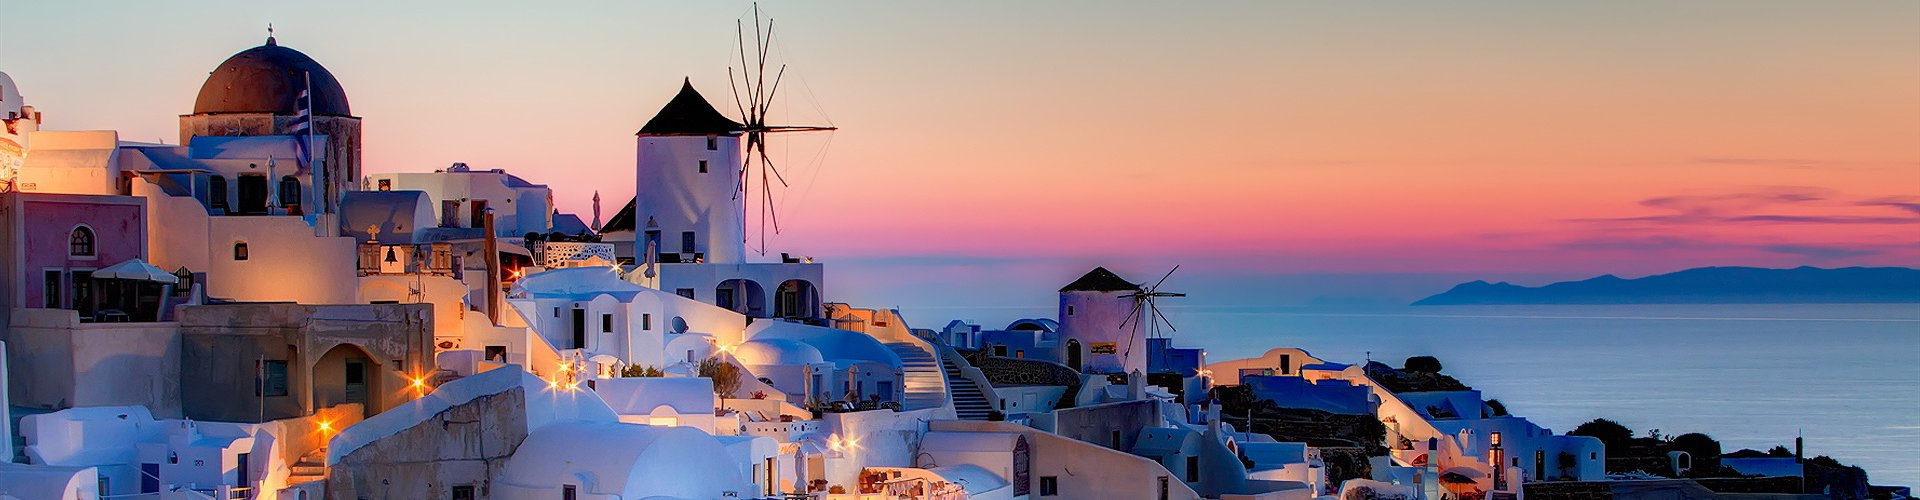 The Greek island of Santorini